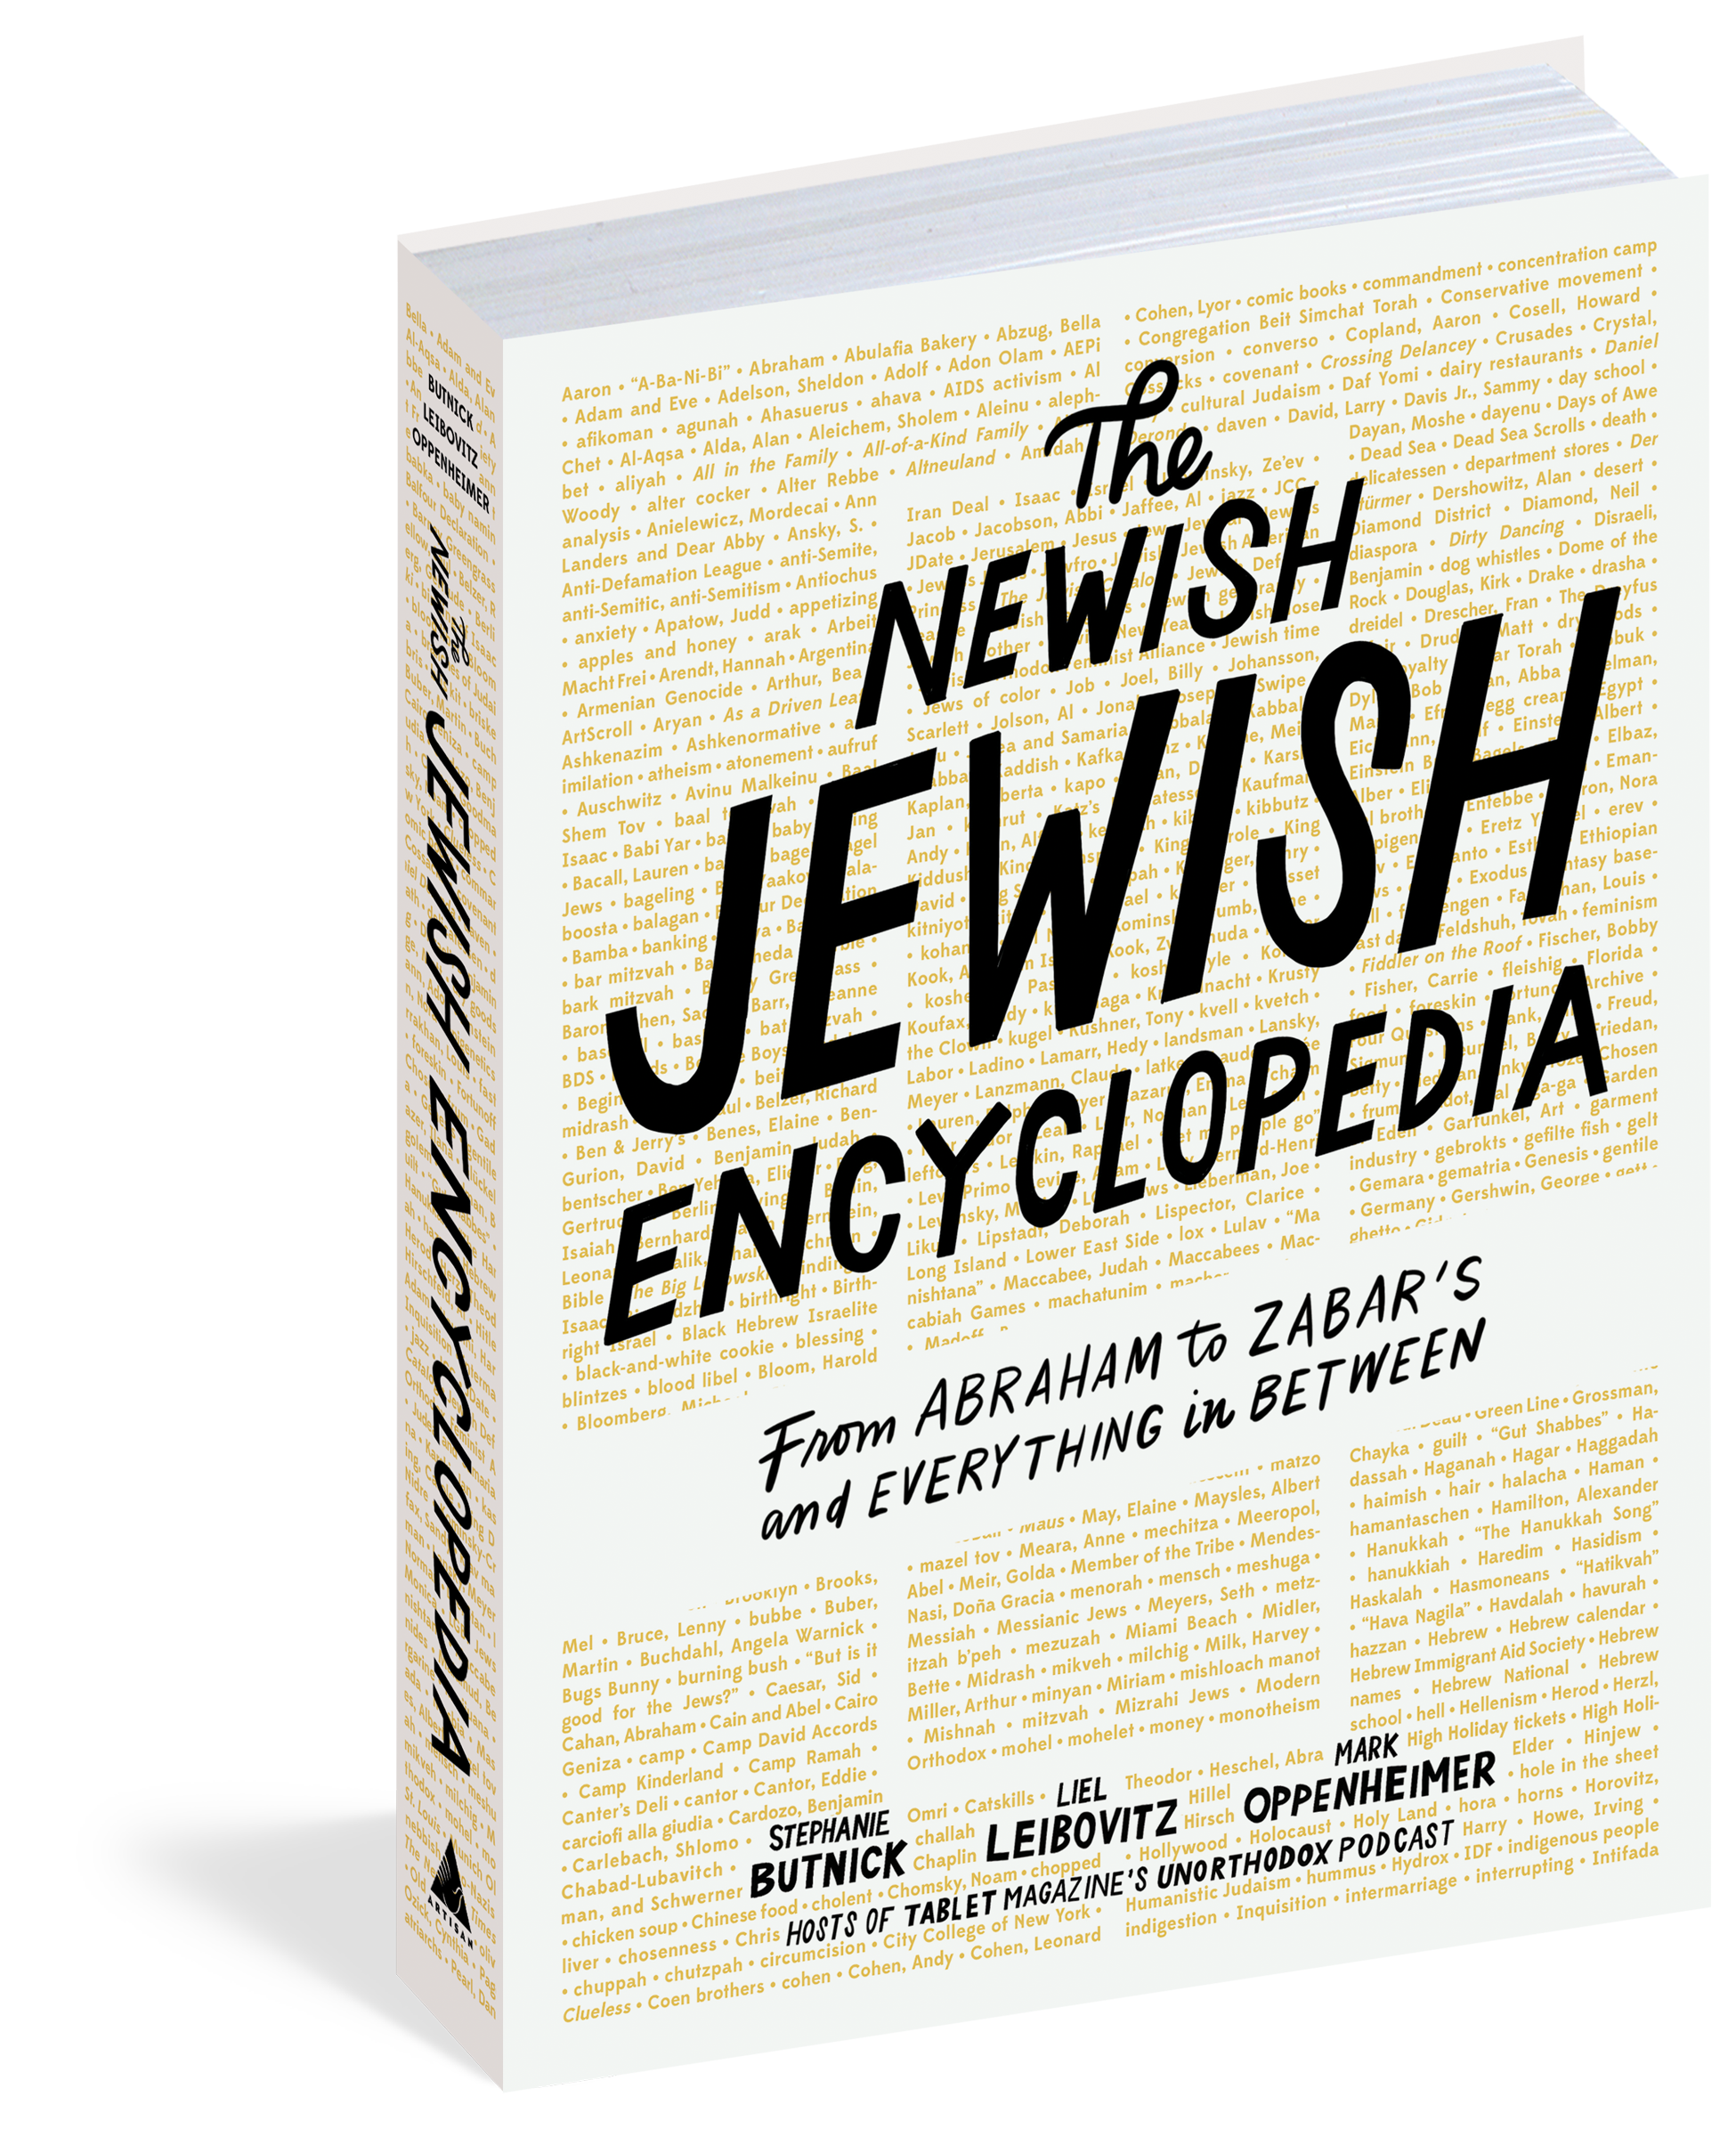 The Newish Jewish Encyclopedia: From Abraham to Zabar's and Everything in Between by Stephanie Butnick, Liel Leibovitz, and Mark Oppenheimer